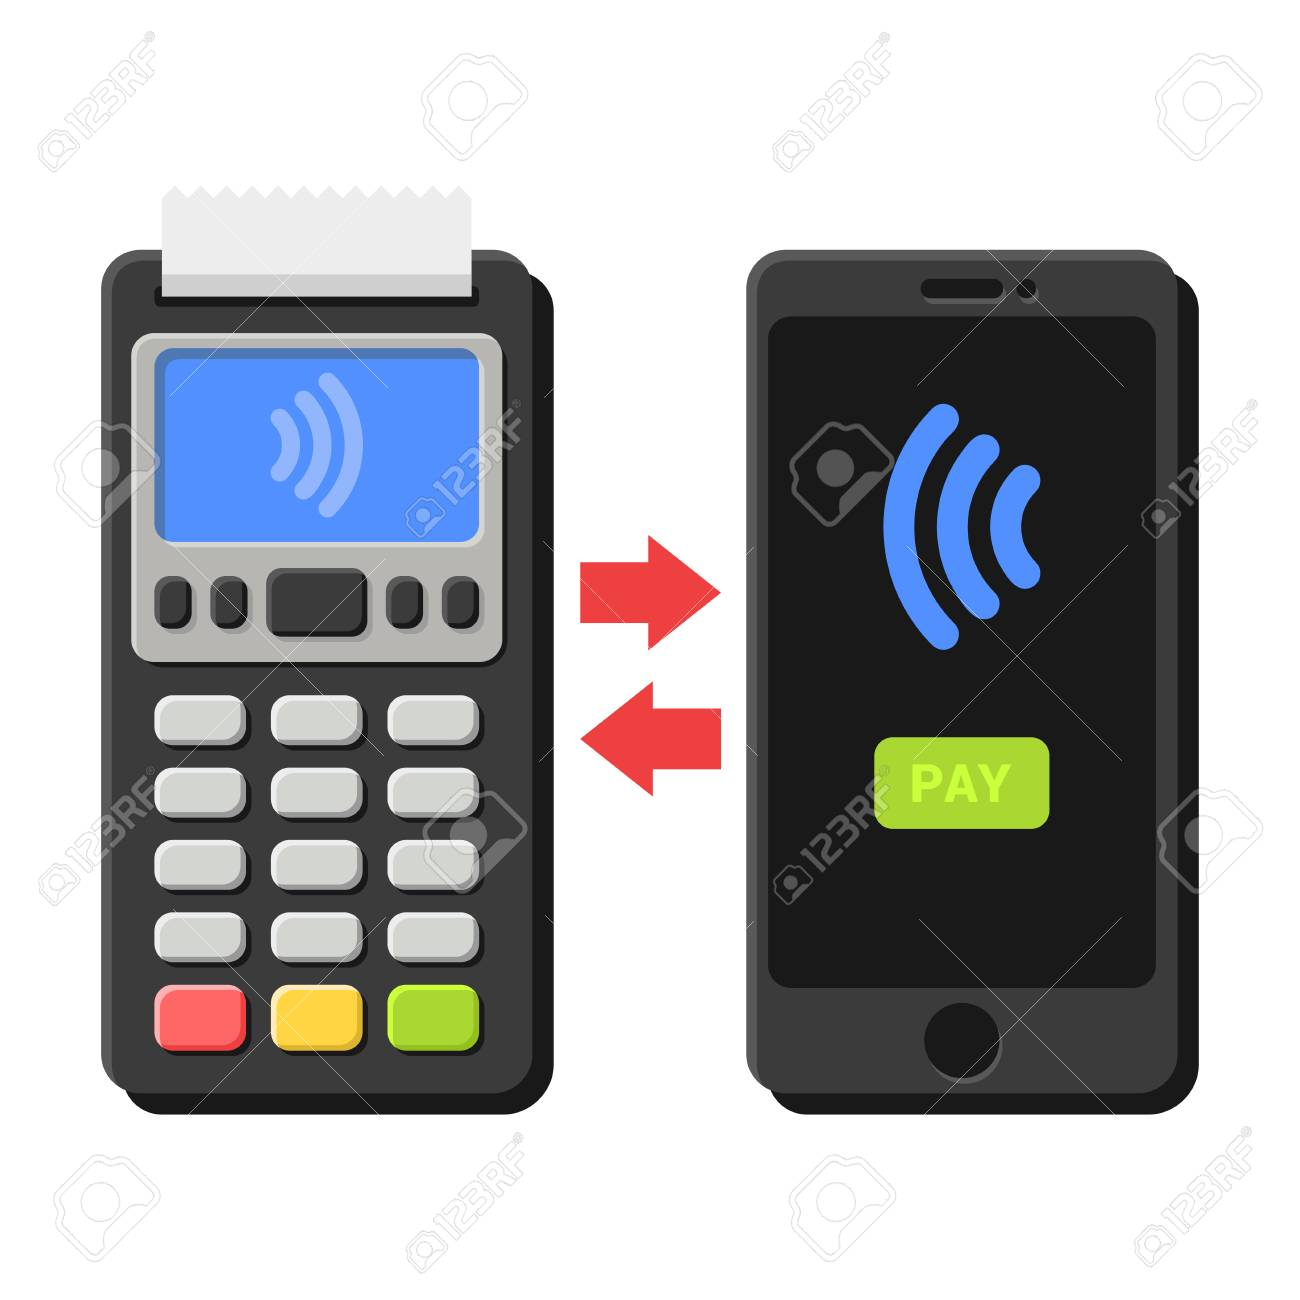 POS Terminal and Smartphone NFC Payment Operation  Vector illustration